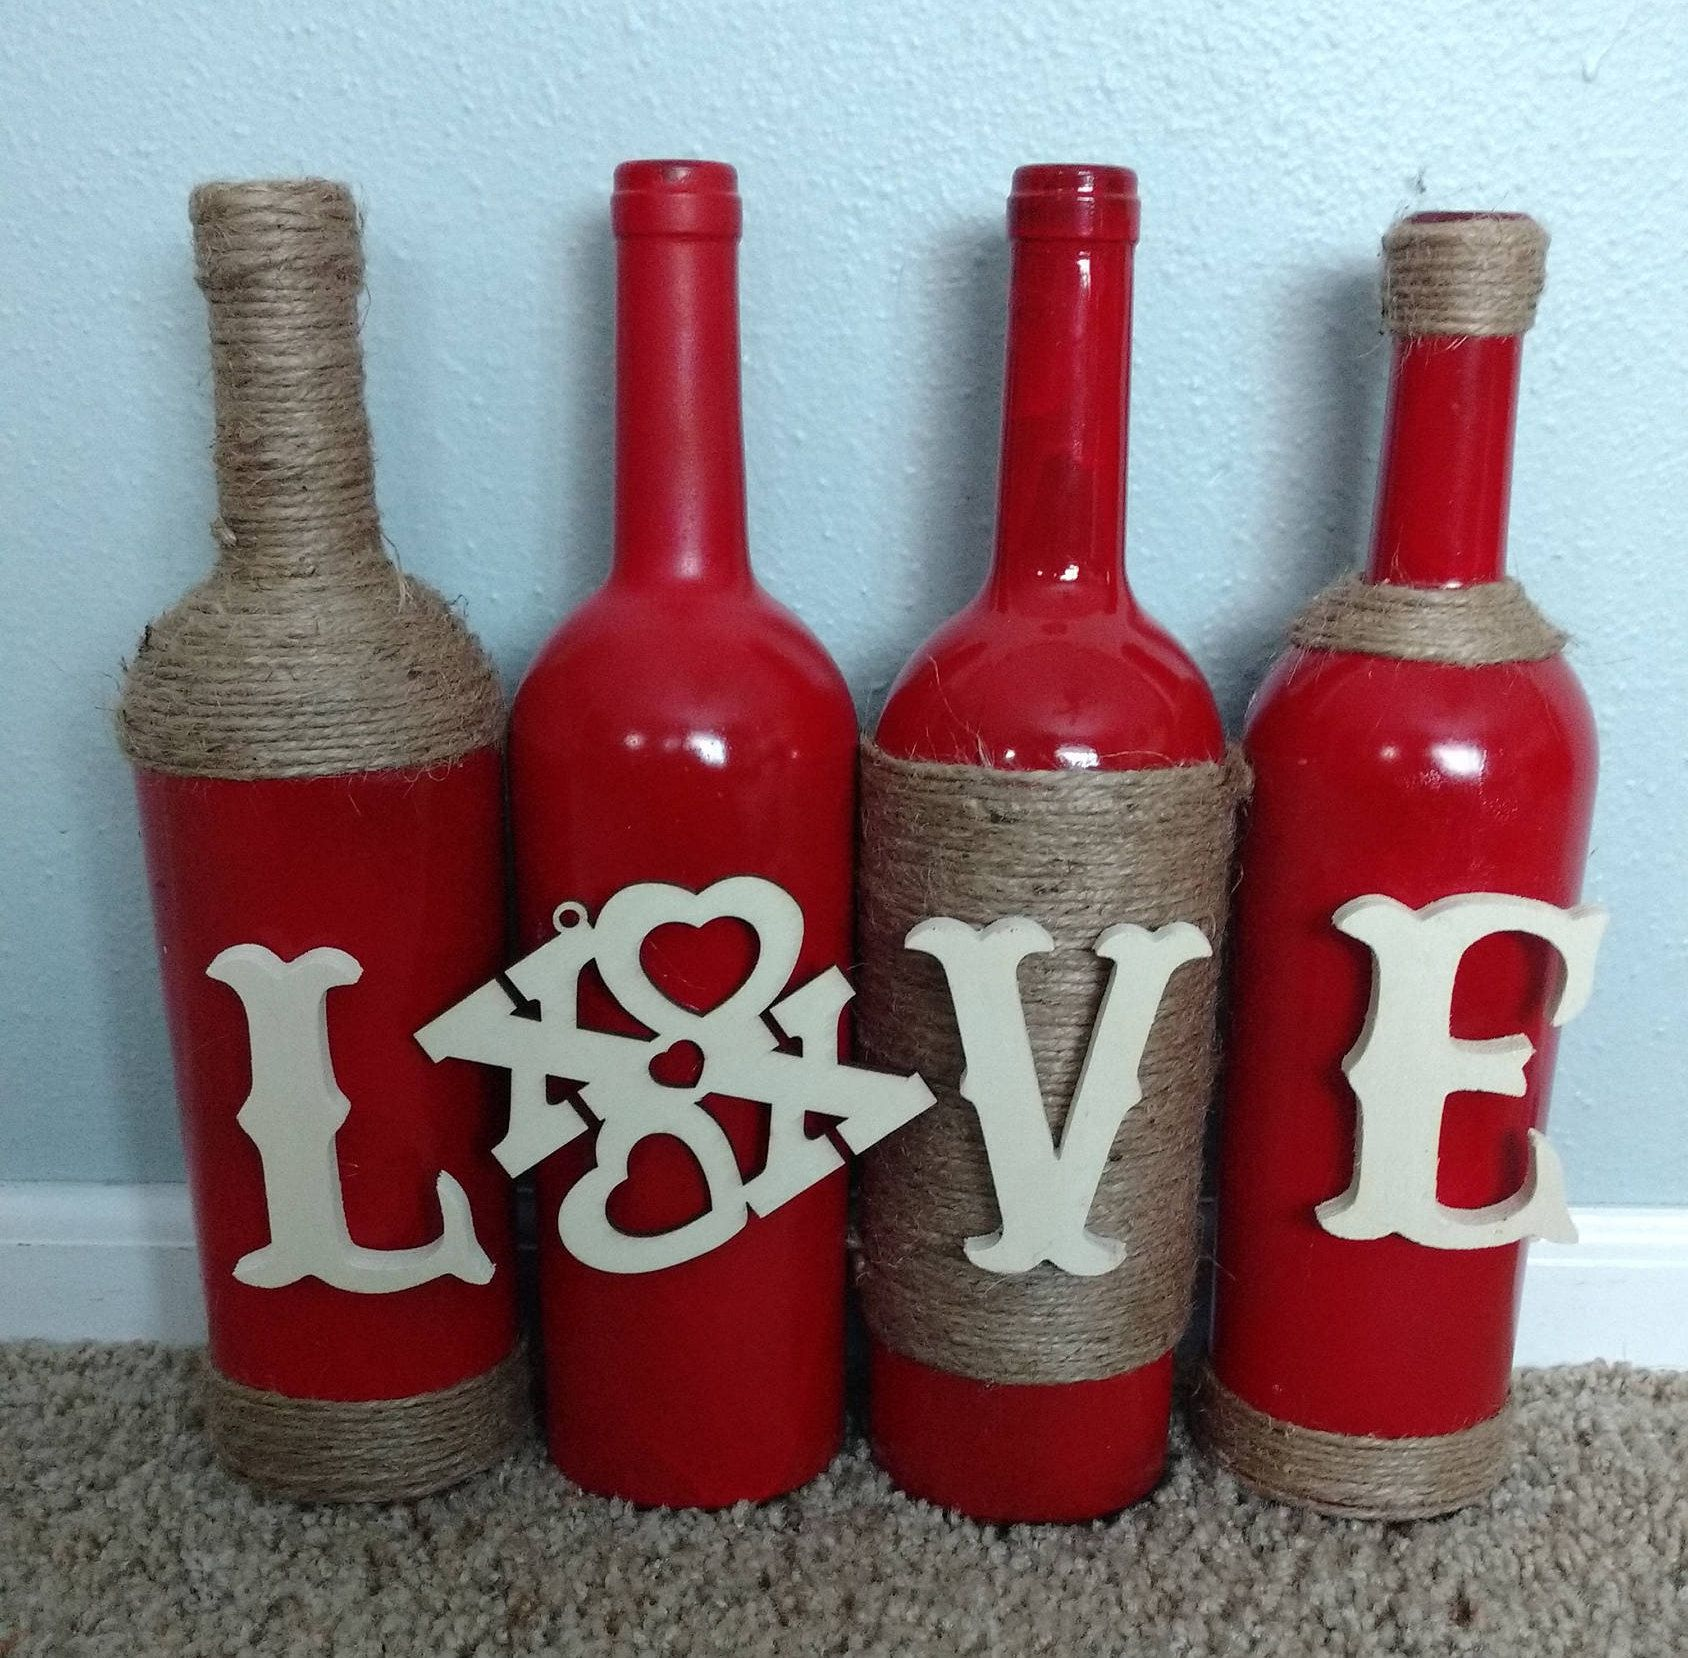 Pin By Tara Stevens On Cool Things Valentines Wine Bottle Crafts Valentines Wine Bottles Wine Bottle Crafts